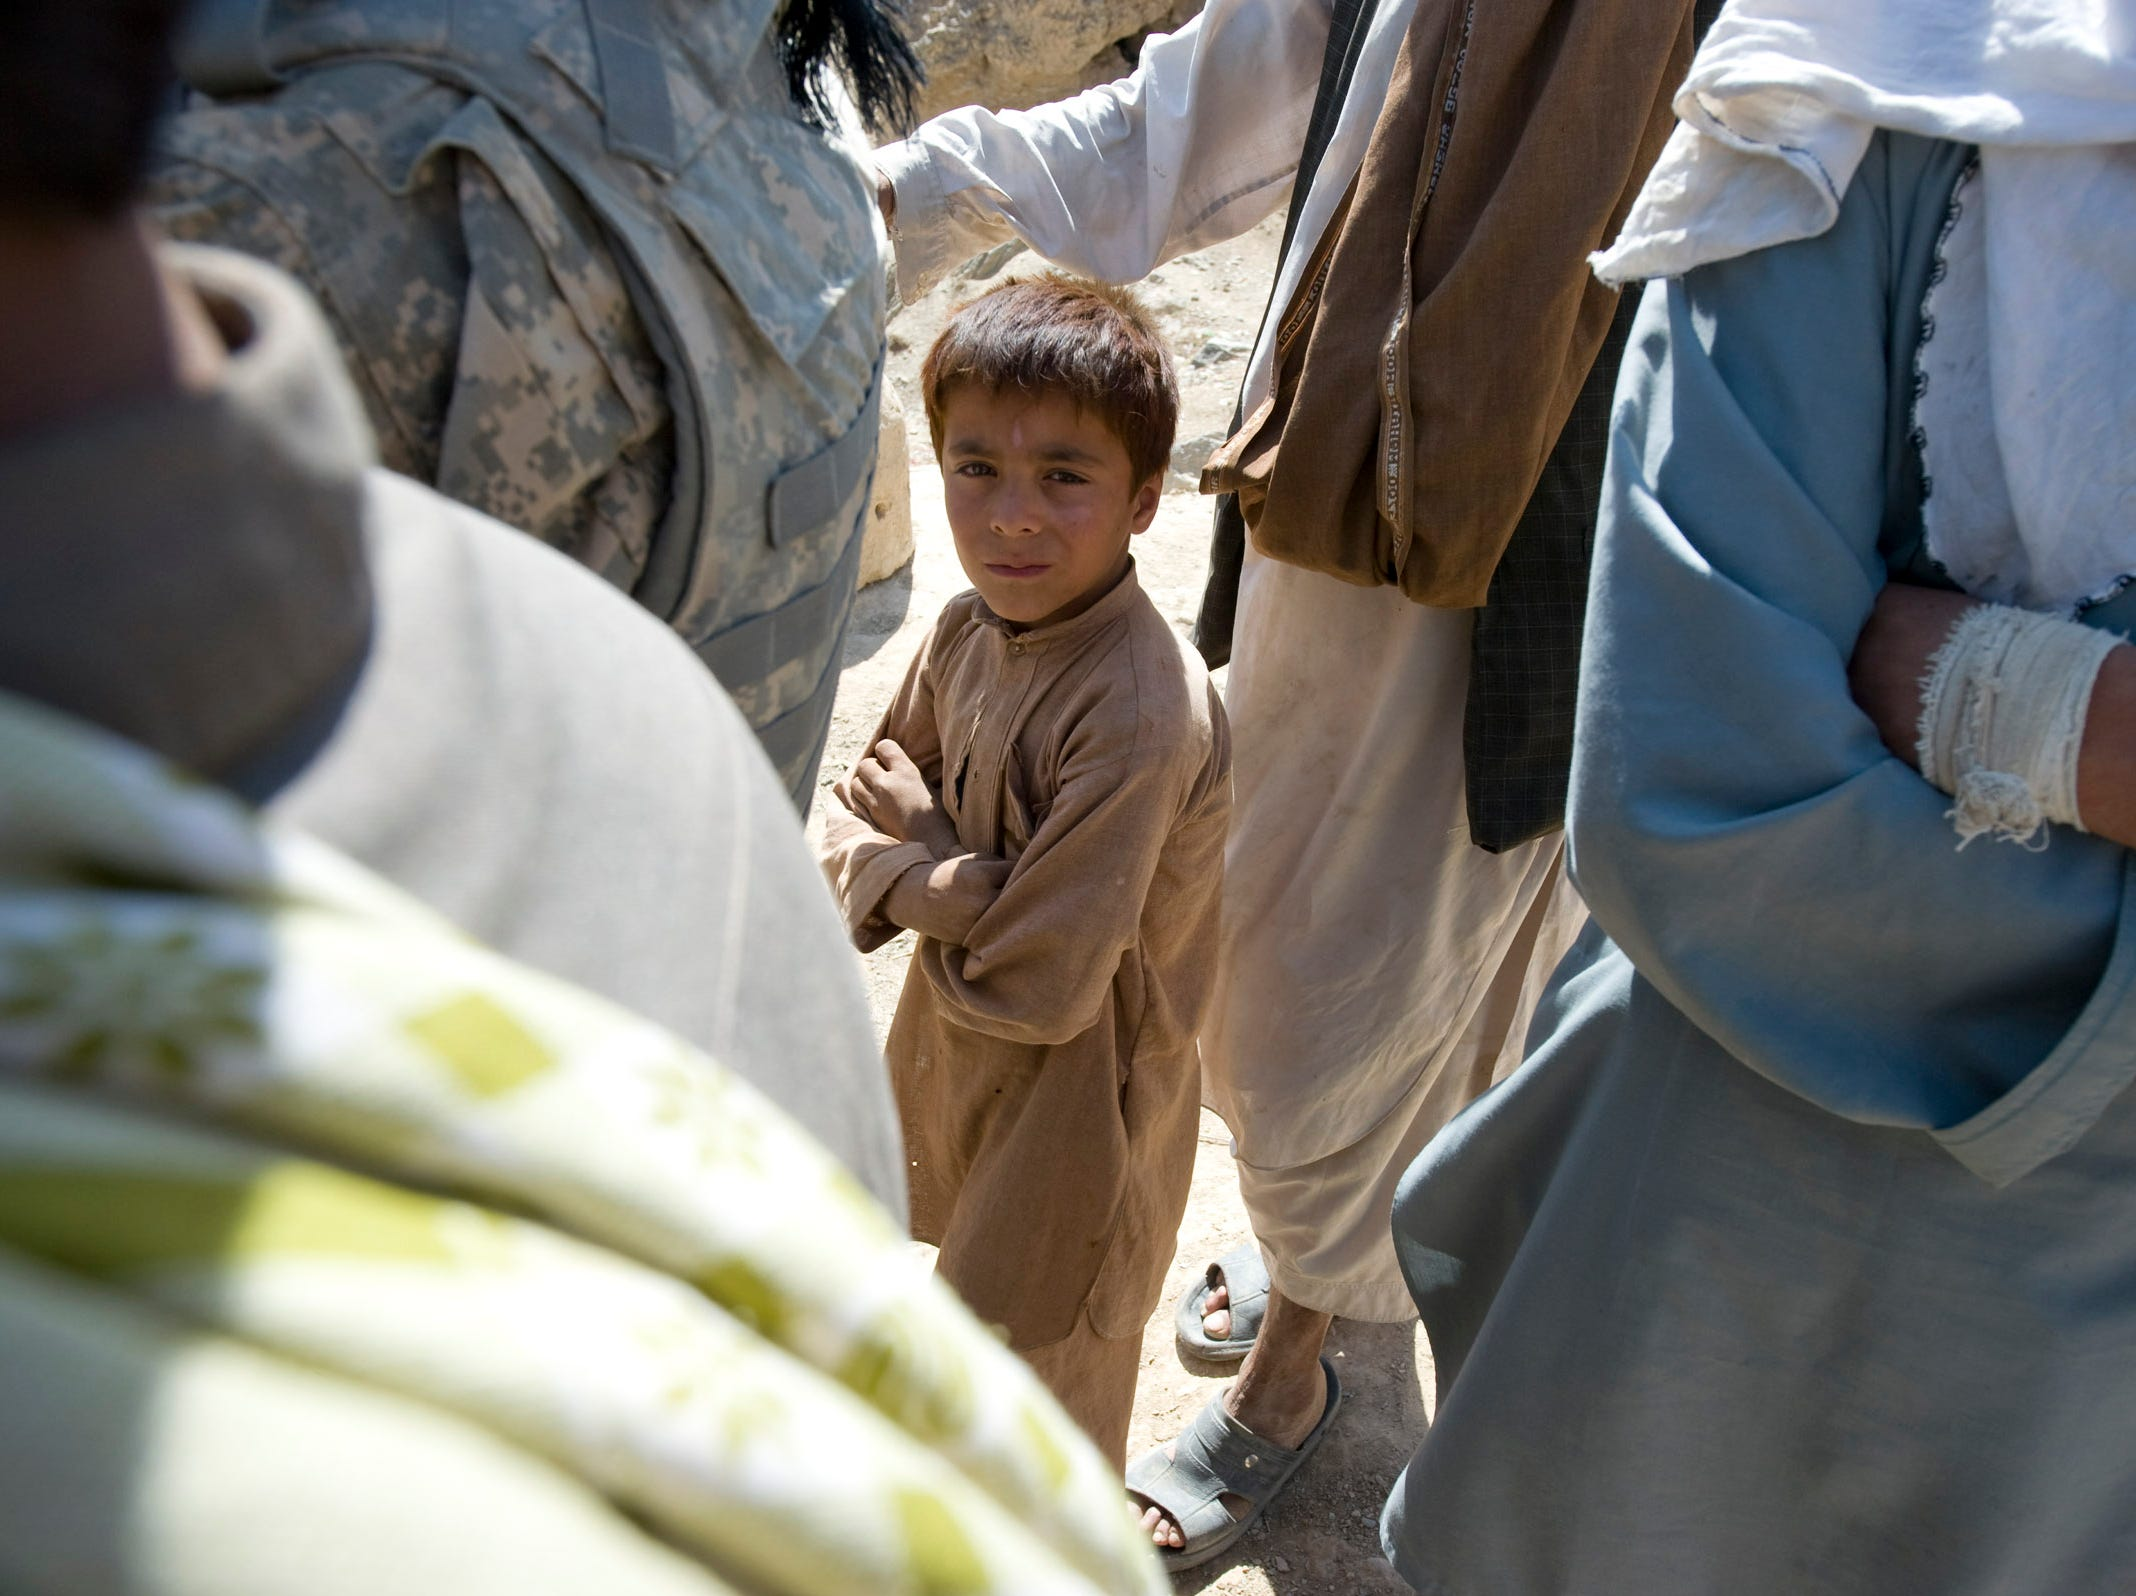 September 2010: An Afghan boy keeps his distance, not sure of what to make of a Vermont National Guard visit along with a U.S. Department of Agriculture representative in the remote village of Kariz Gha in the mountains of Parwan Province. Elders there complained that another U.S. aid worker visited months ago, made promises, but that no action came from the visit.